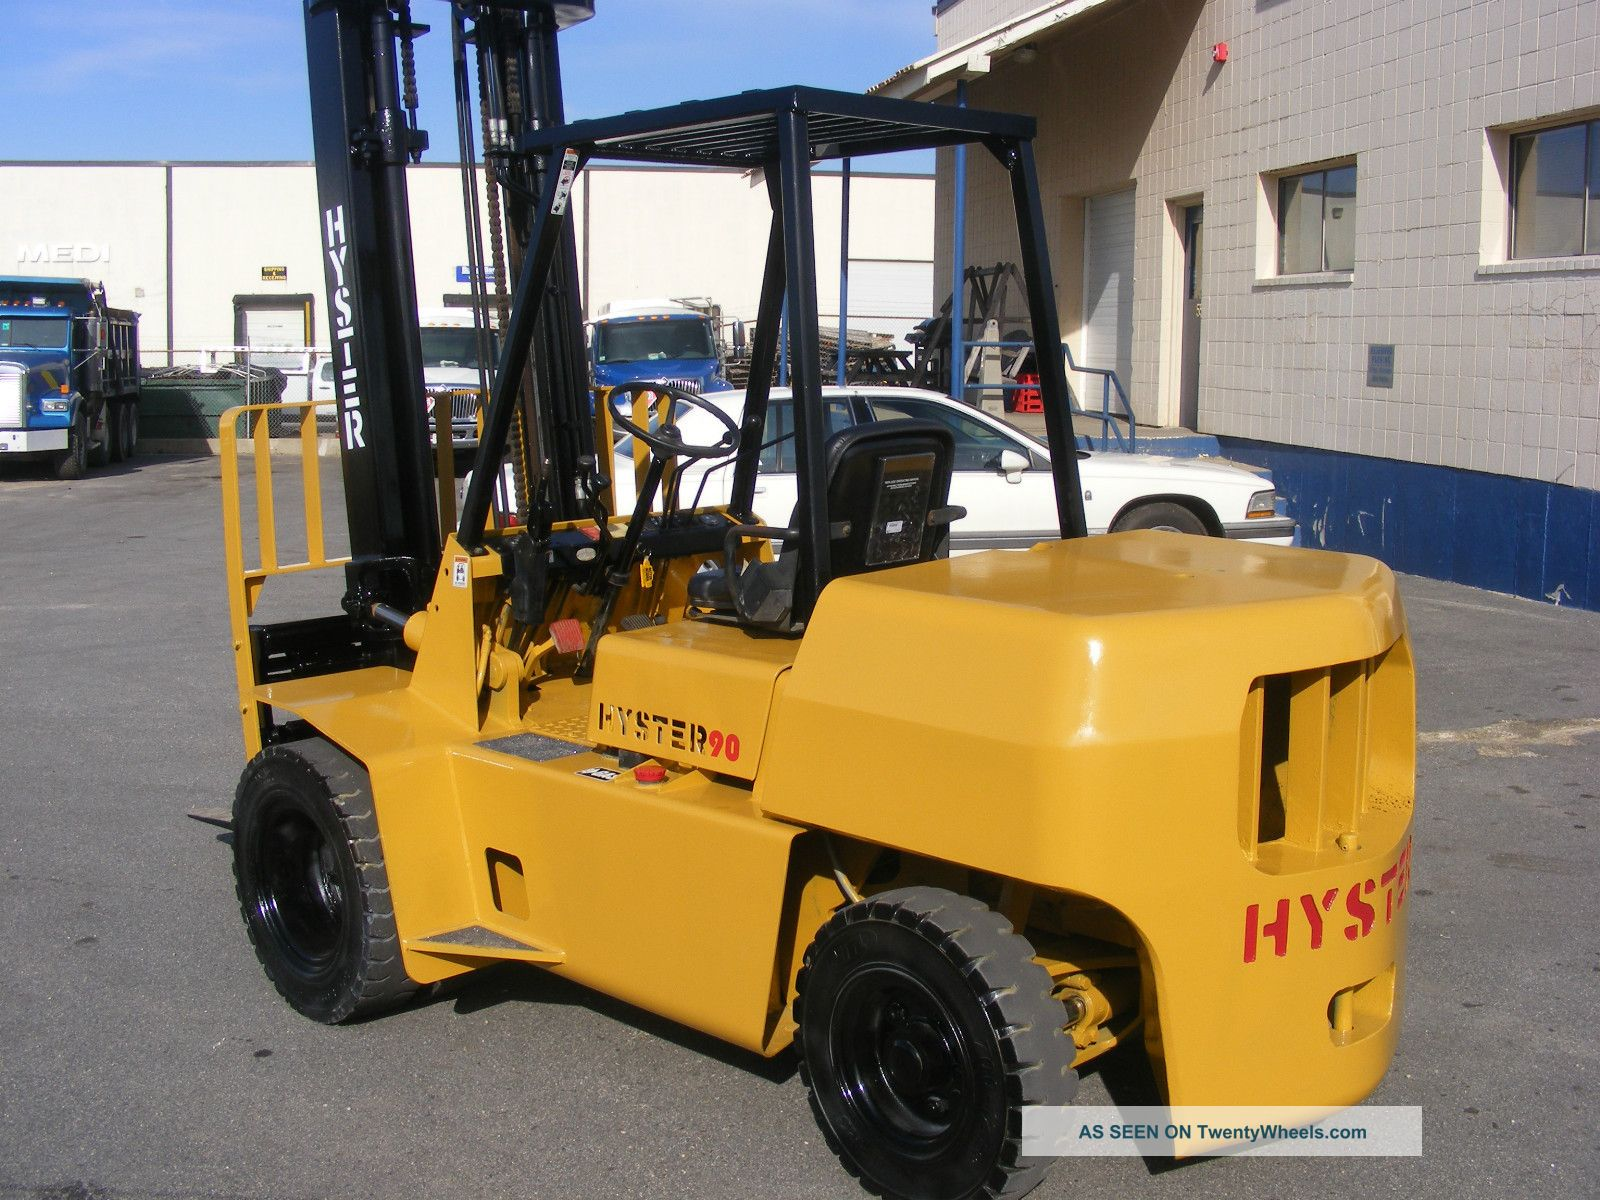 Hyster 90 photo - 3